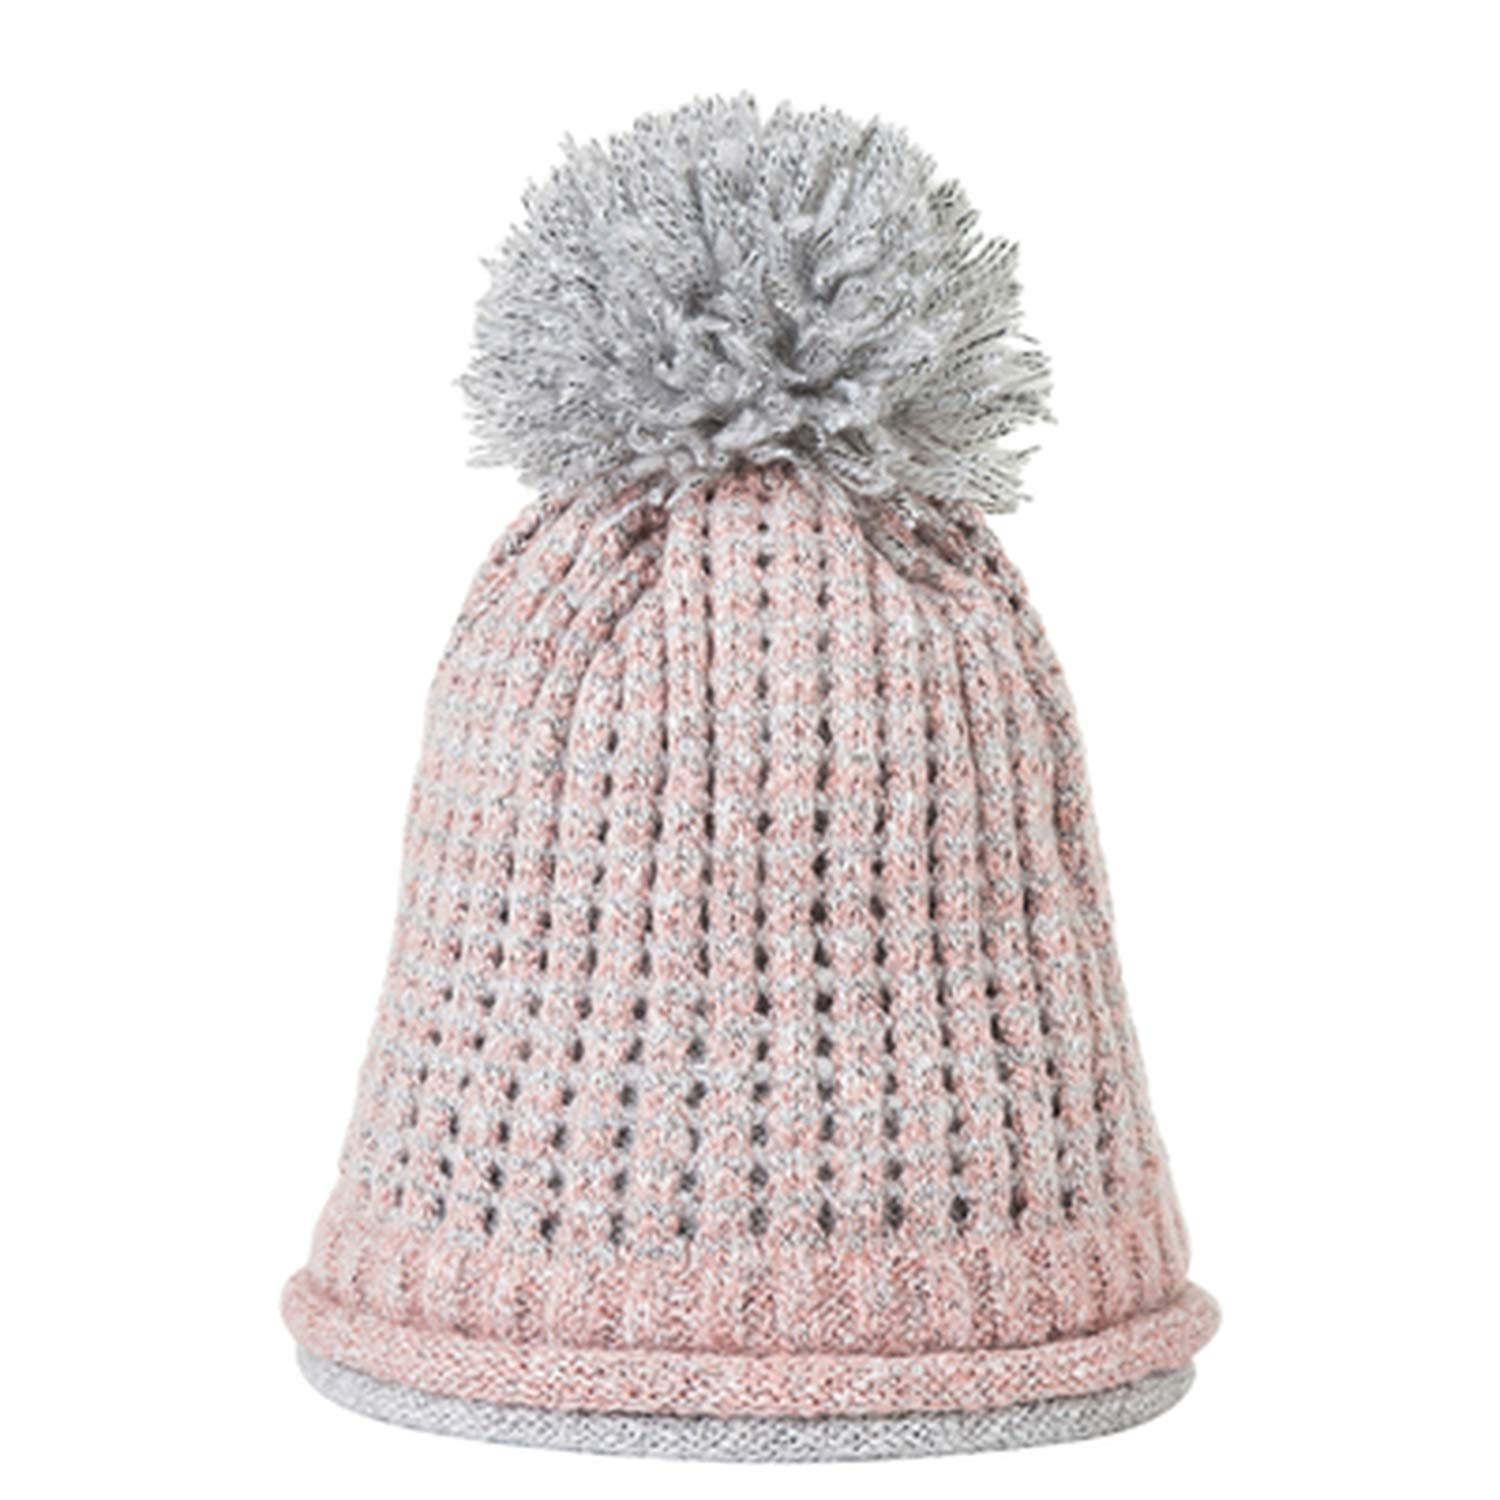 XINBONG 2018 New Winter Double-Layer Hat Women Beanie Hat Fashion Thickening Knitted Wool Hat for Girls Pom Pom Caps